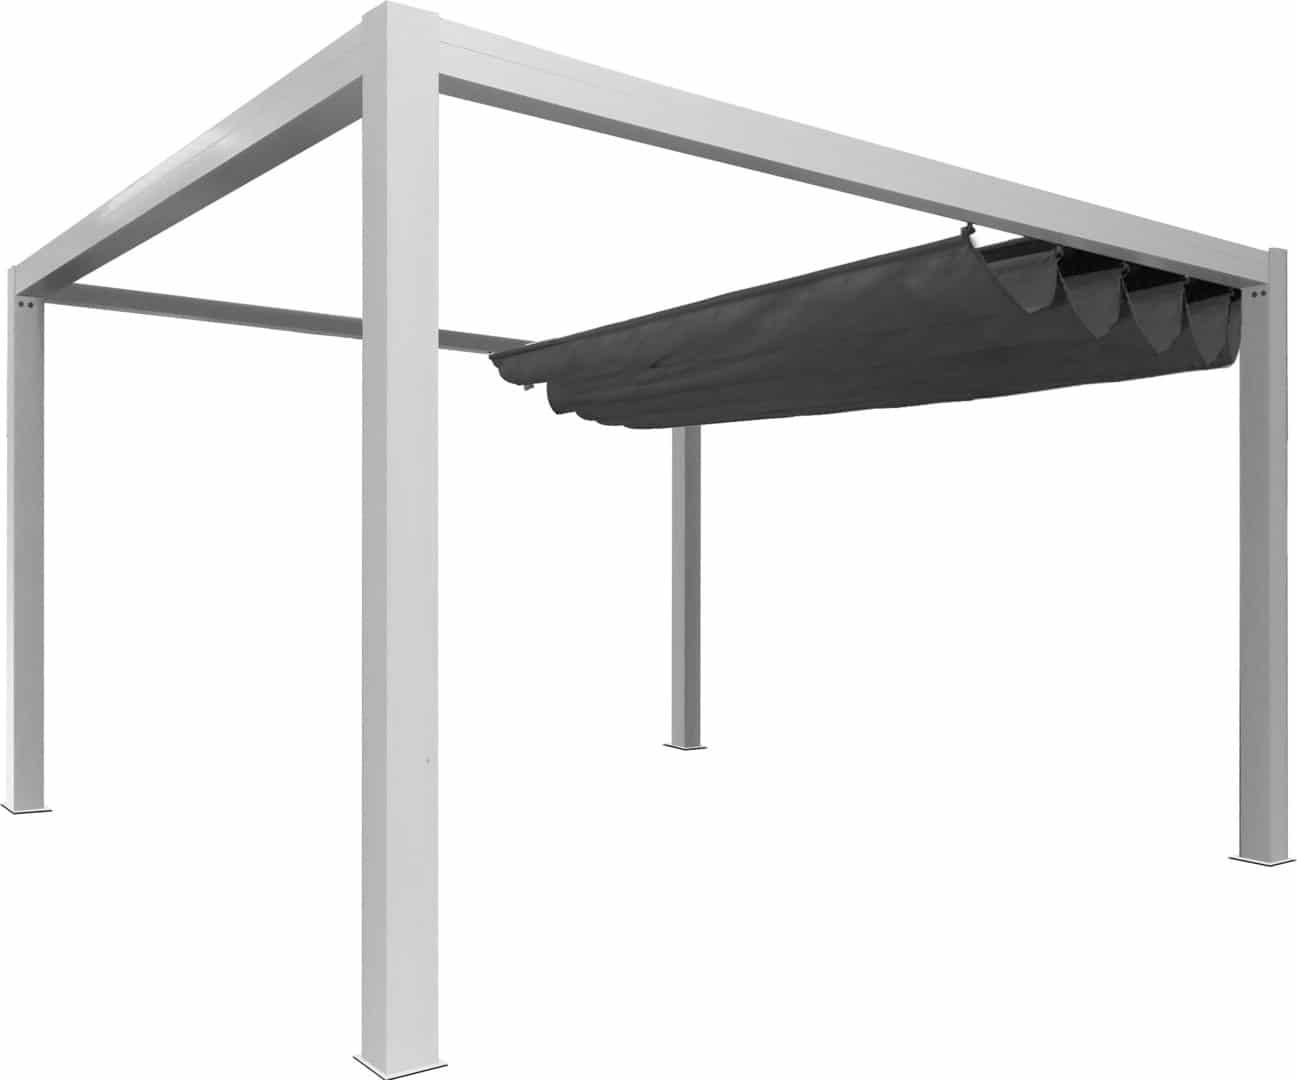 brico pergola pergolas en bois brico marche with brico pergola delightful pergola alu brico. Black Bedroom Furniture Sets. Home Design Ideas